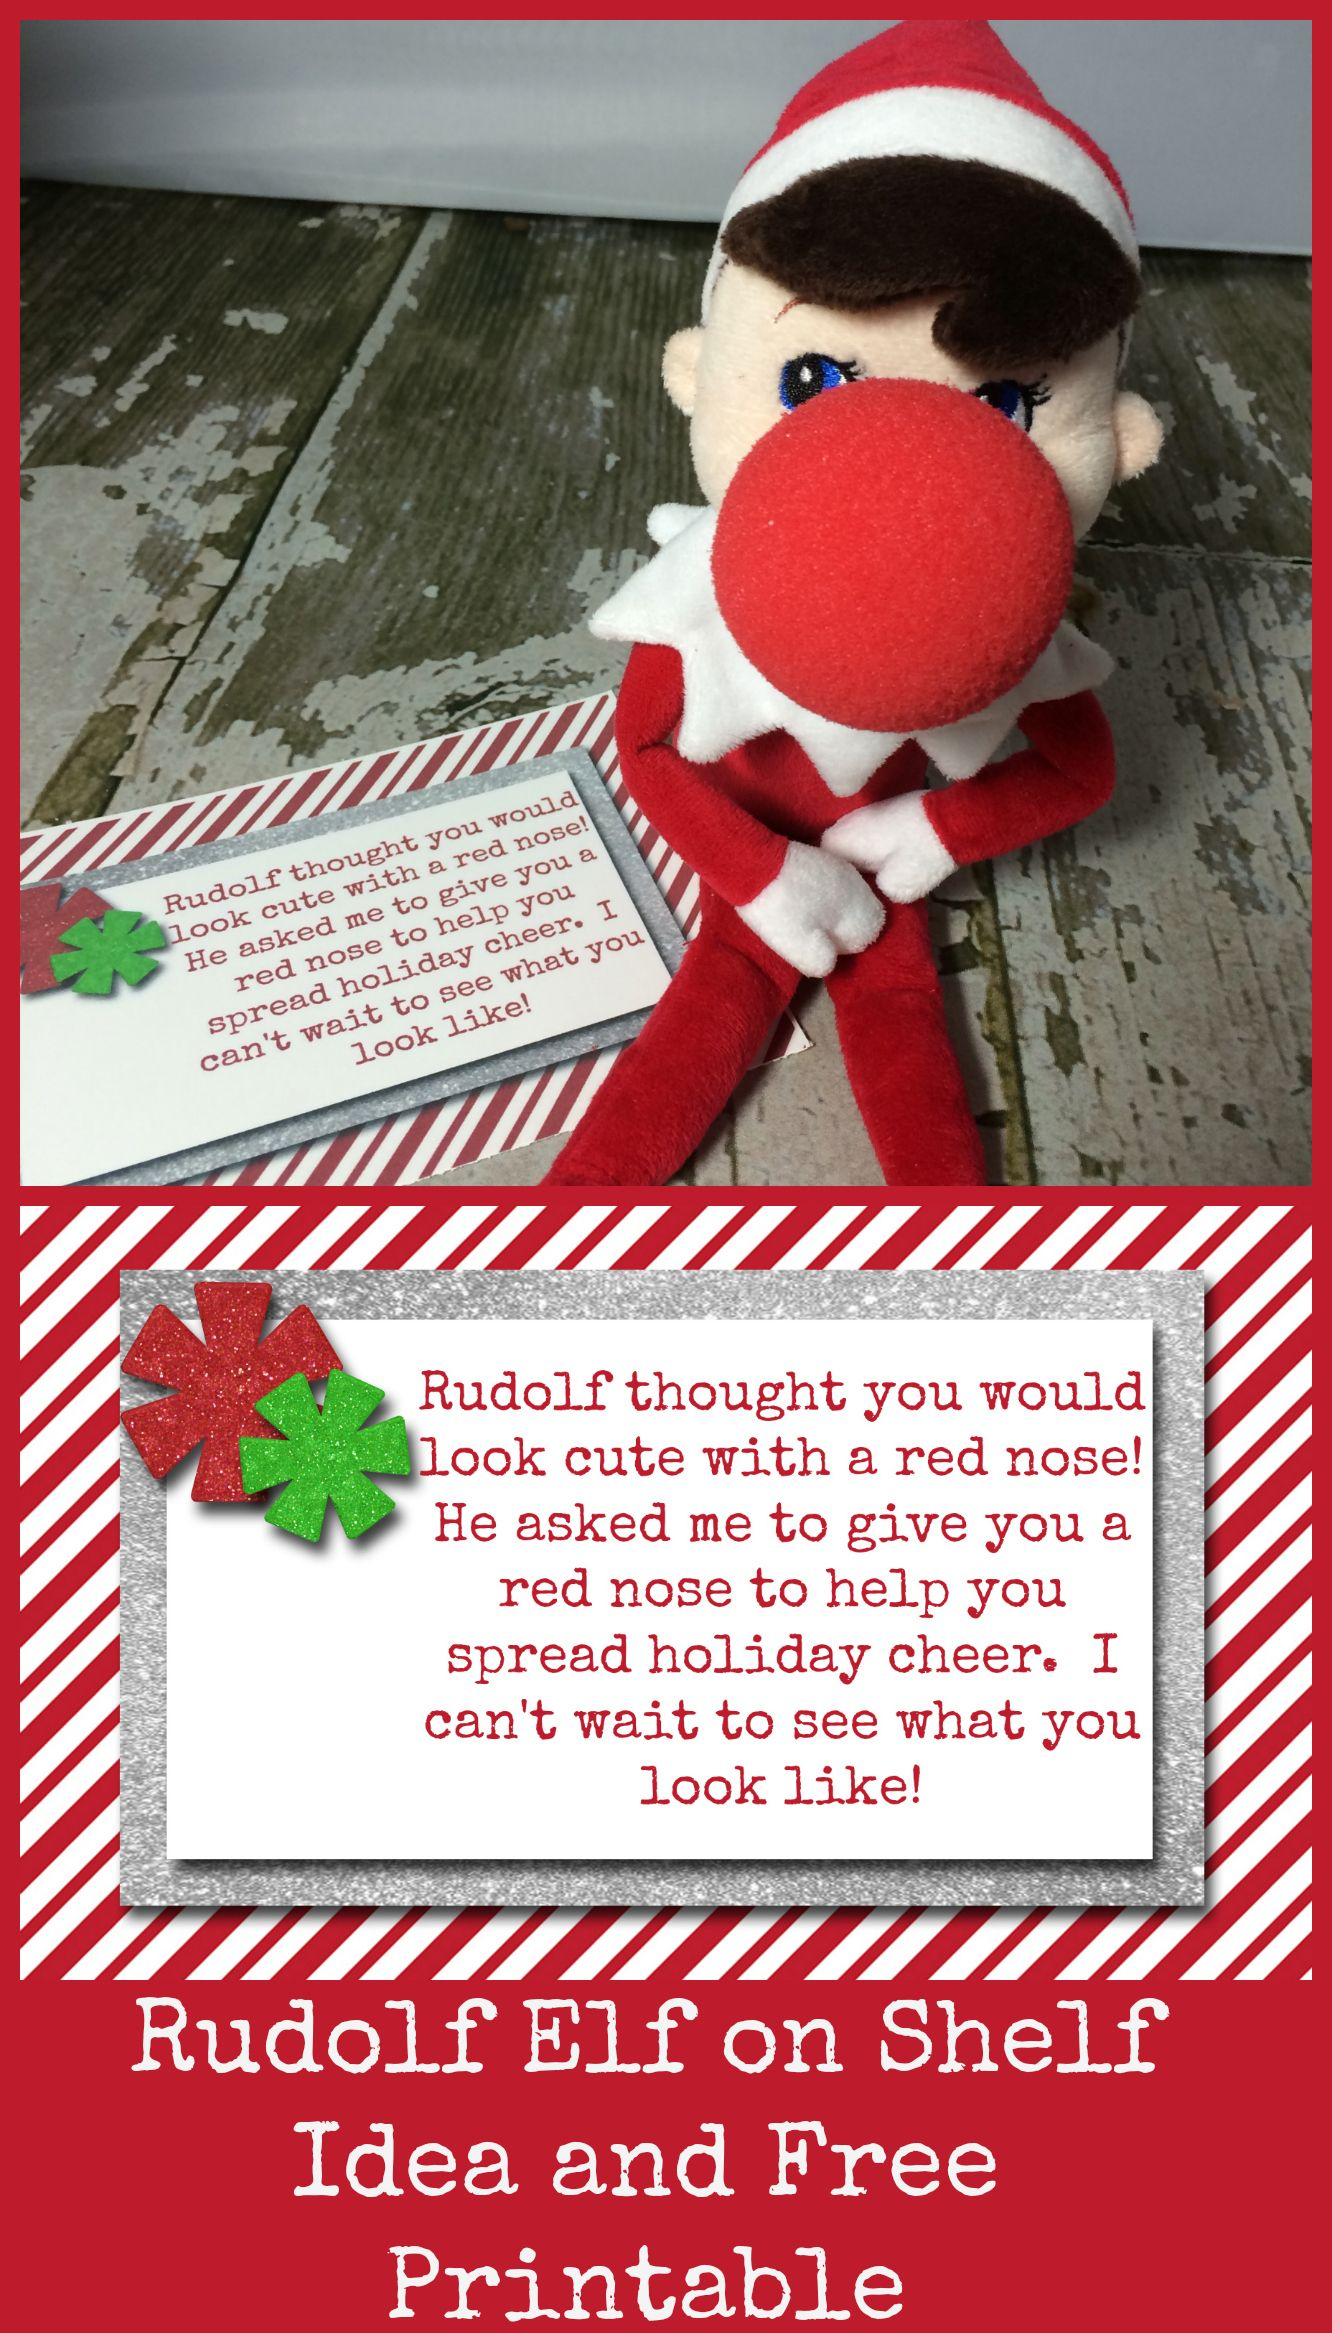 Rudolf Red Nose Elf on the Shelf Idea with FREE Printable